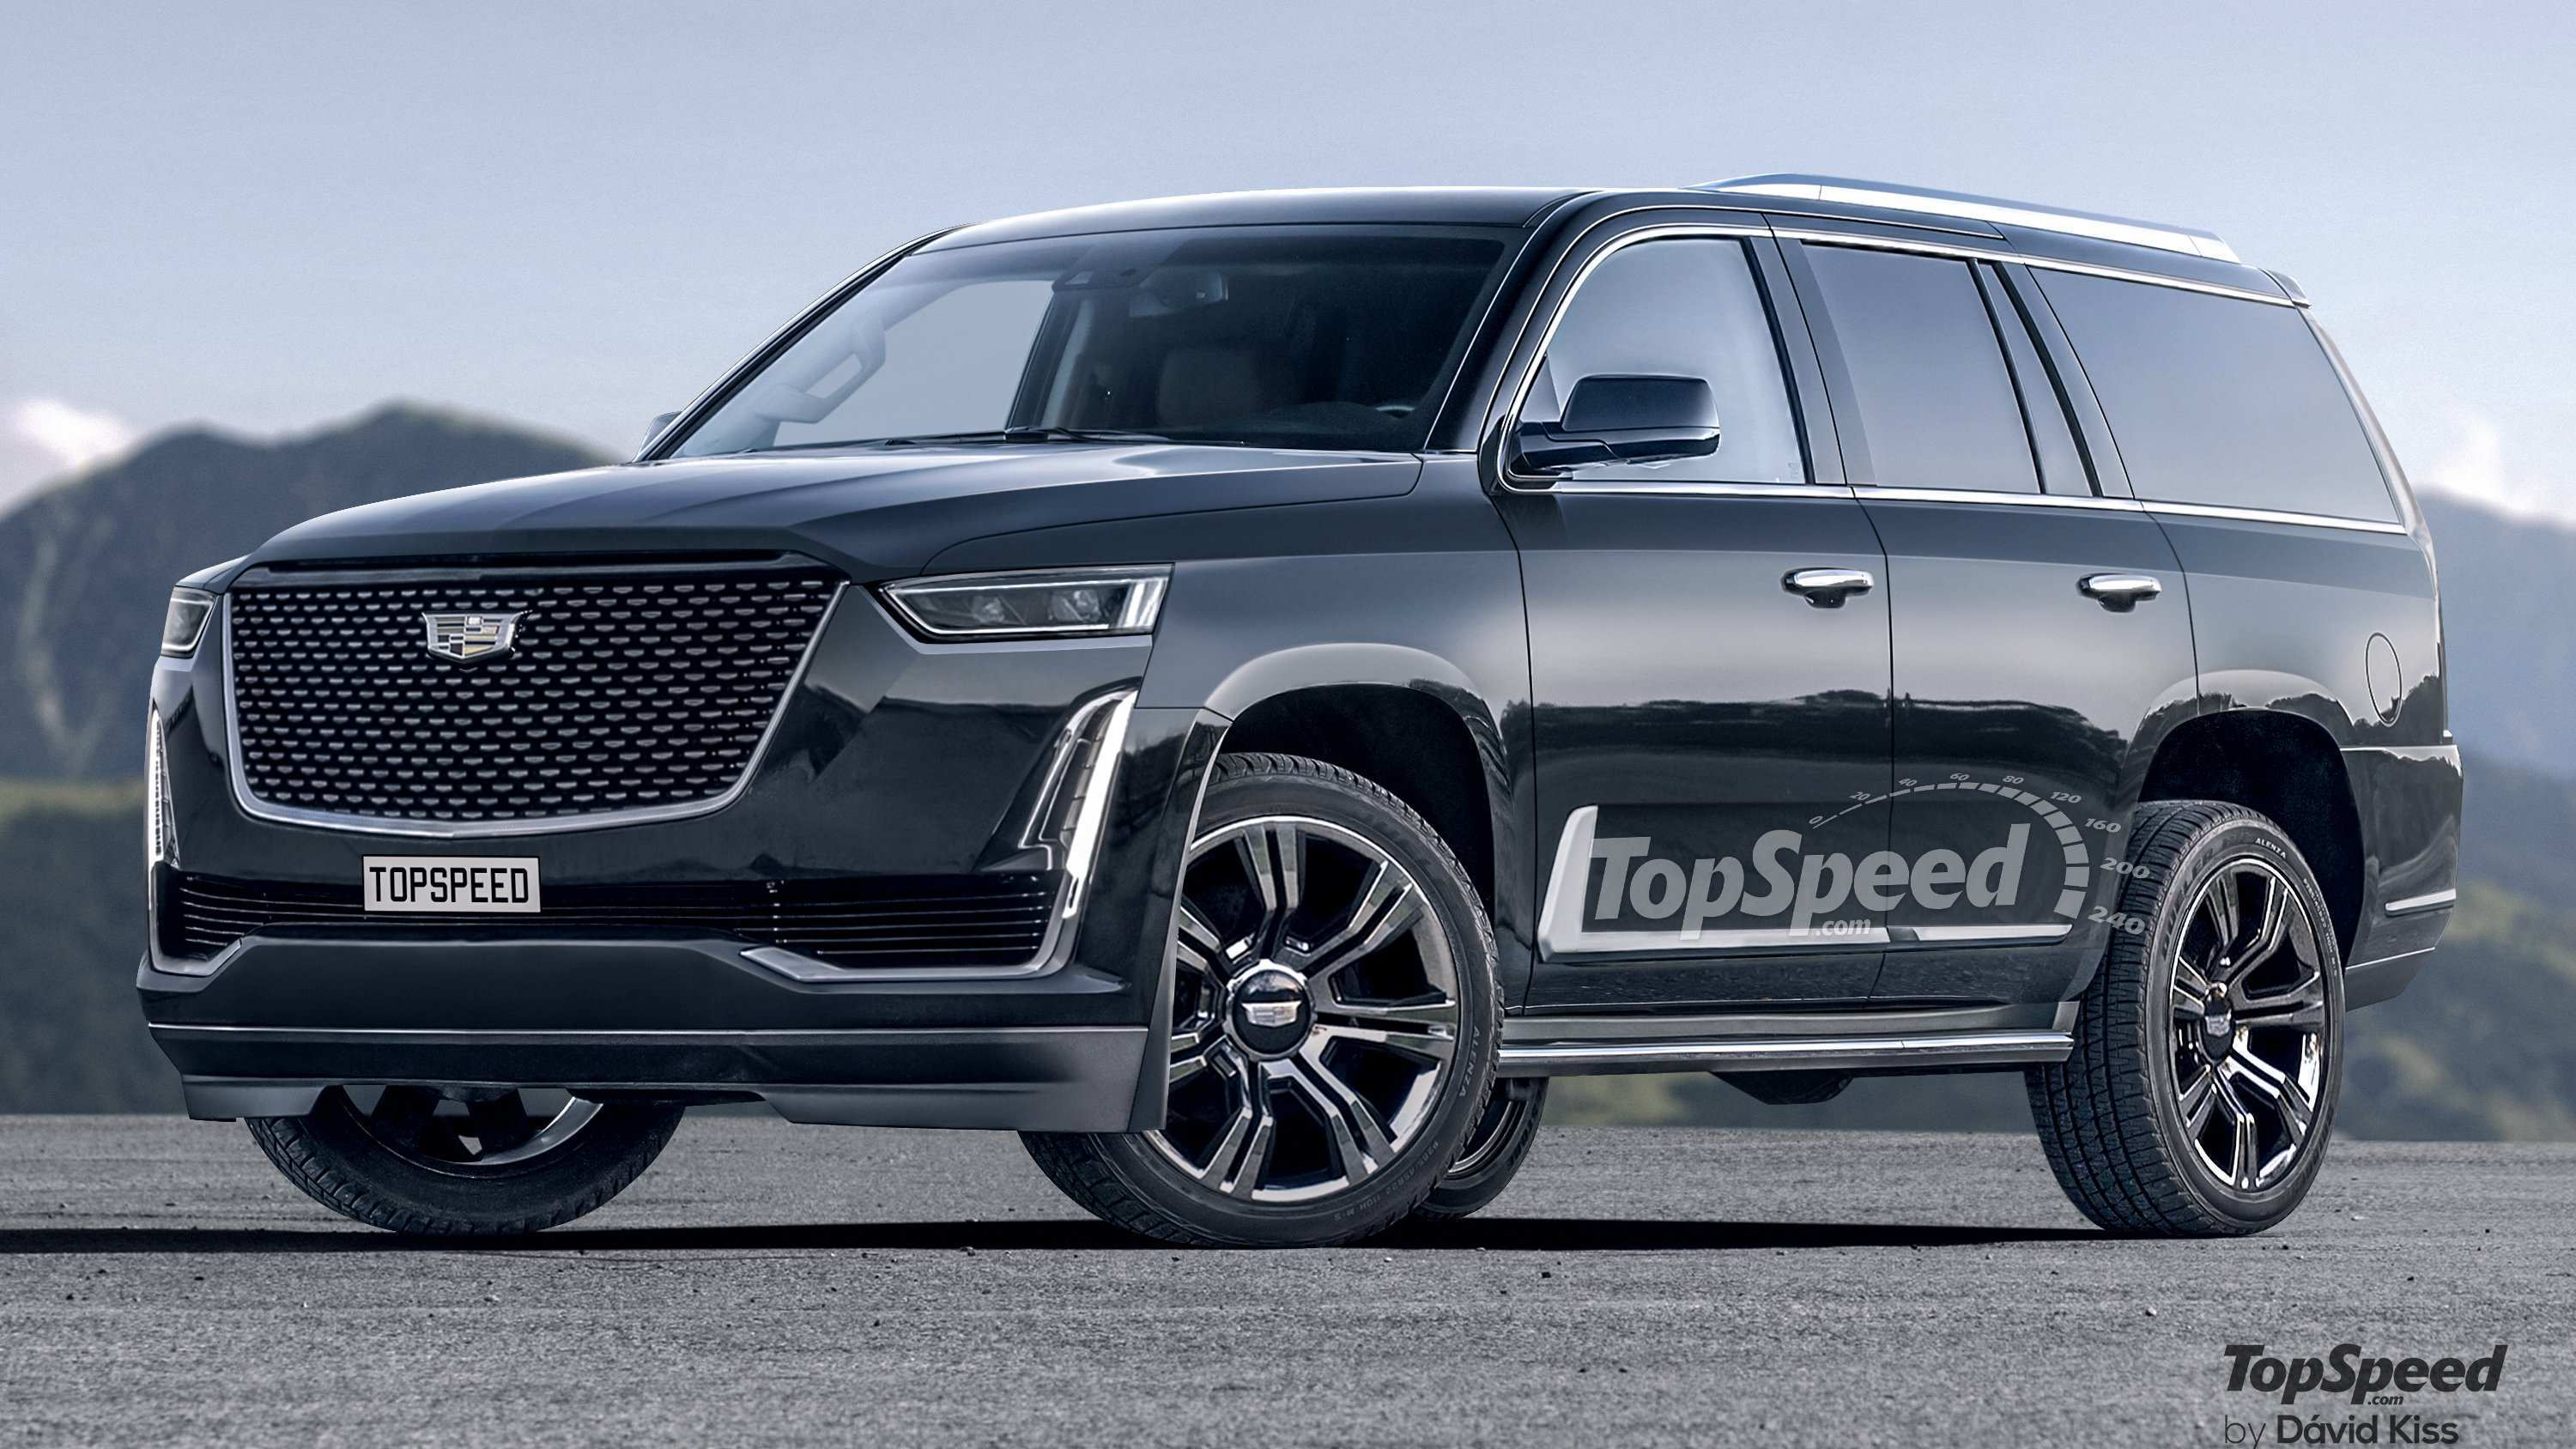 57 The Best 2020 Cadillac Escalade Vsport Price Design And Review